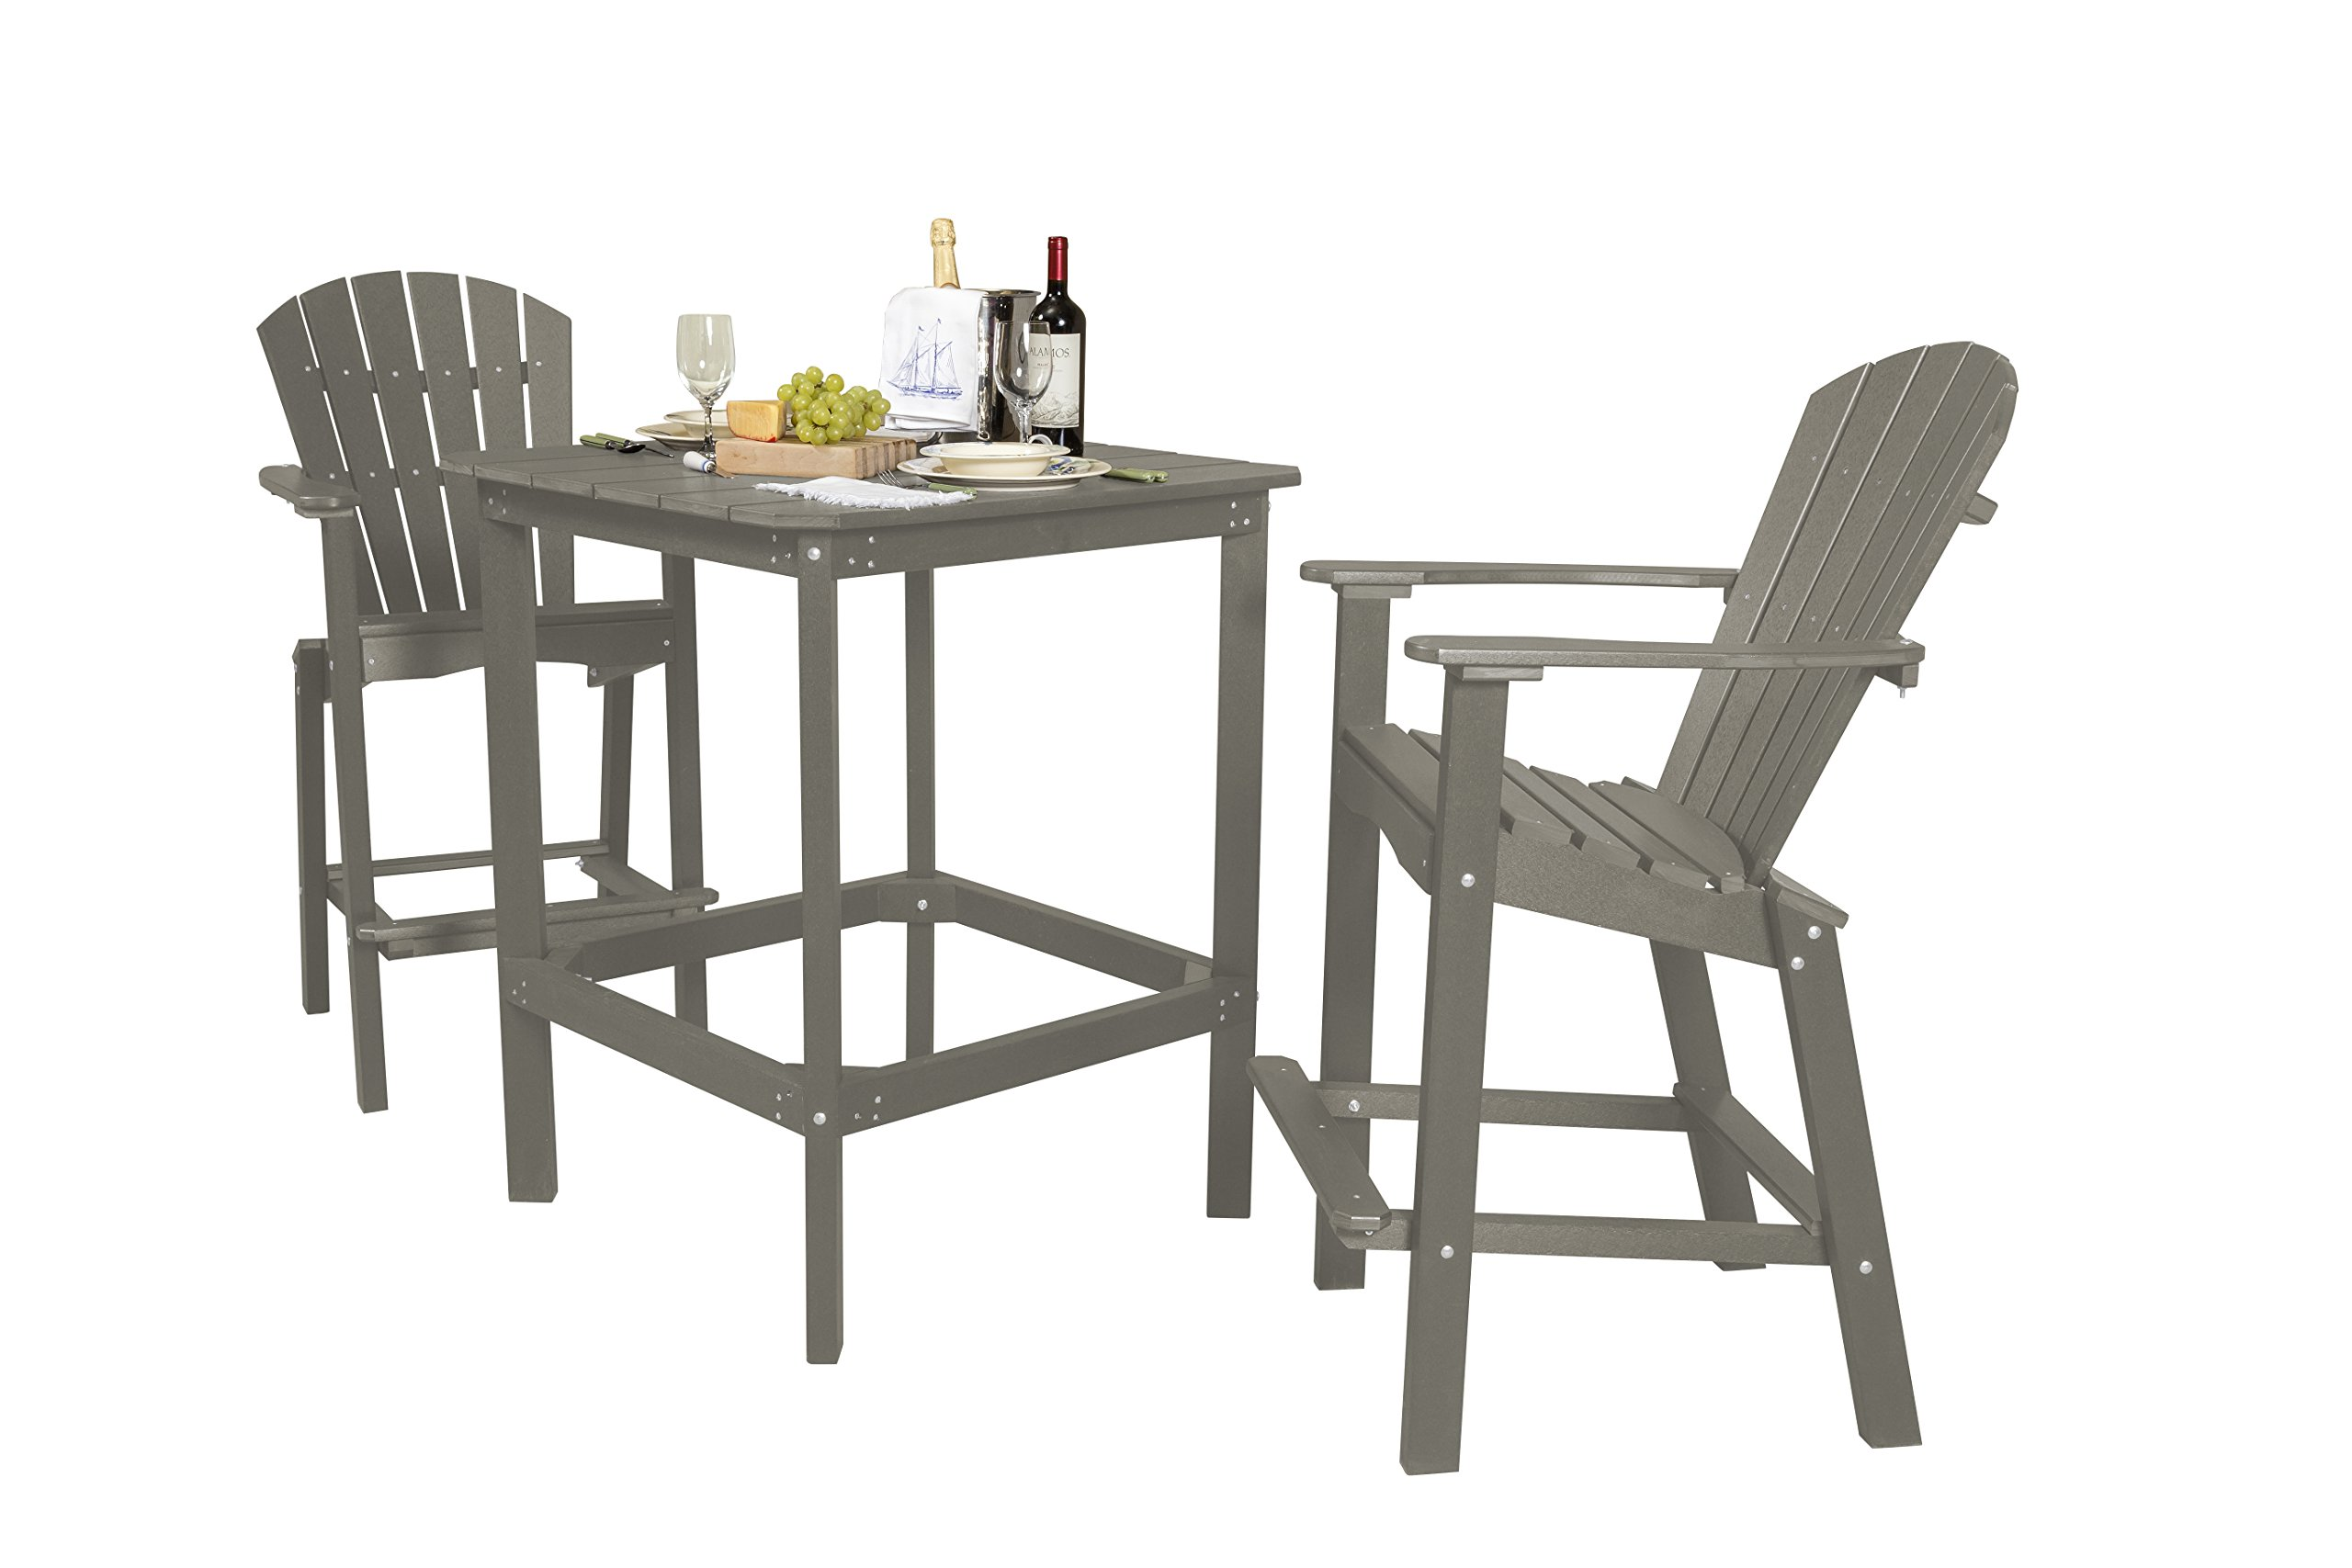 Little Cottage Company Lcc-286 Classic High Dining Table with 2 Chairs, 42'', Light Gray by Little Cottage Company